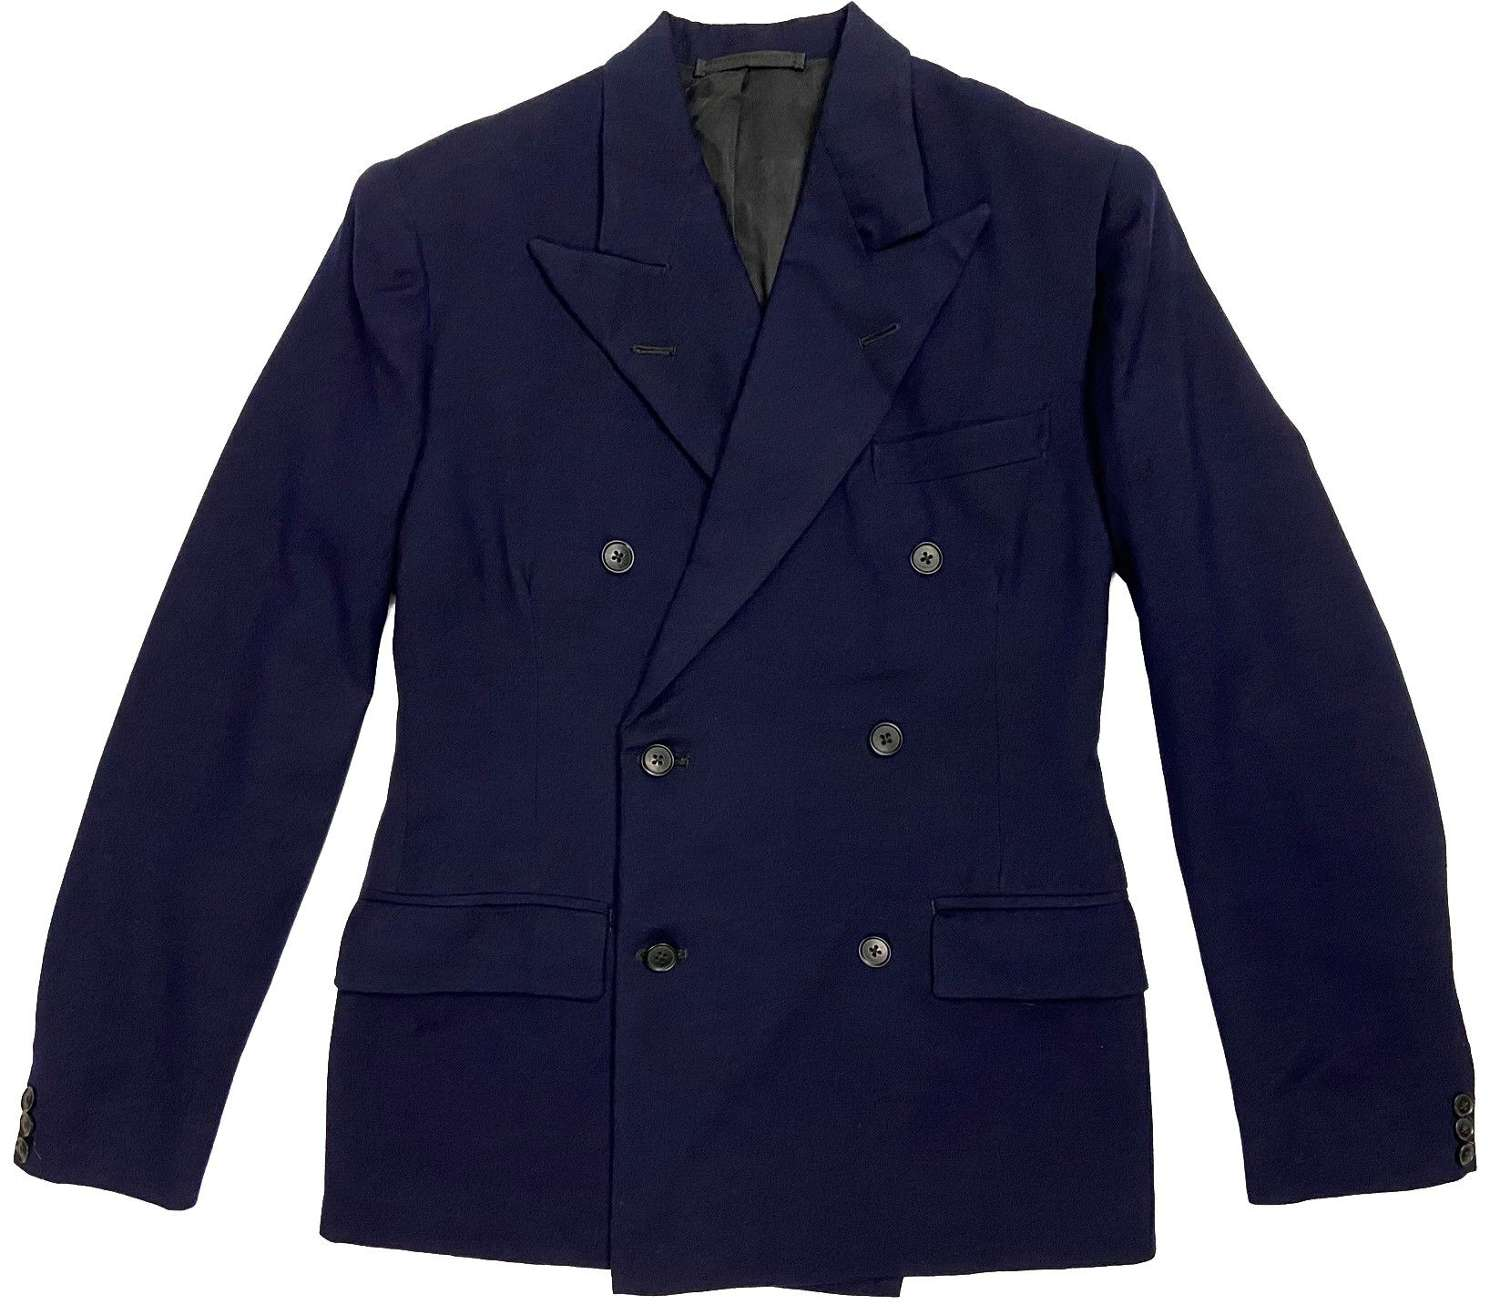 Original 1940s Men's Navy Blue Double Breasted Jacket